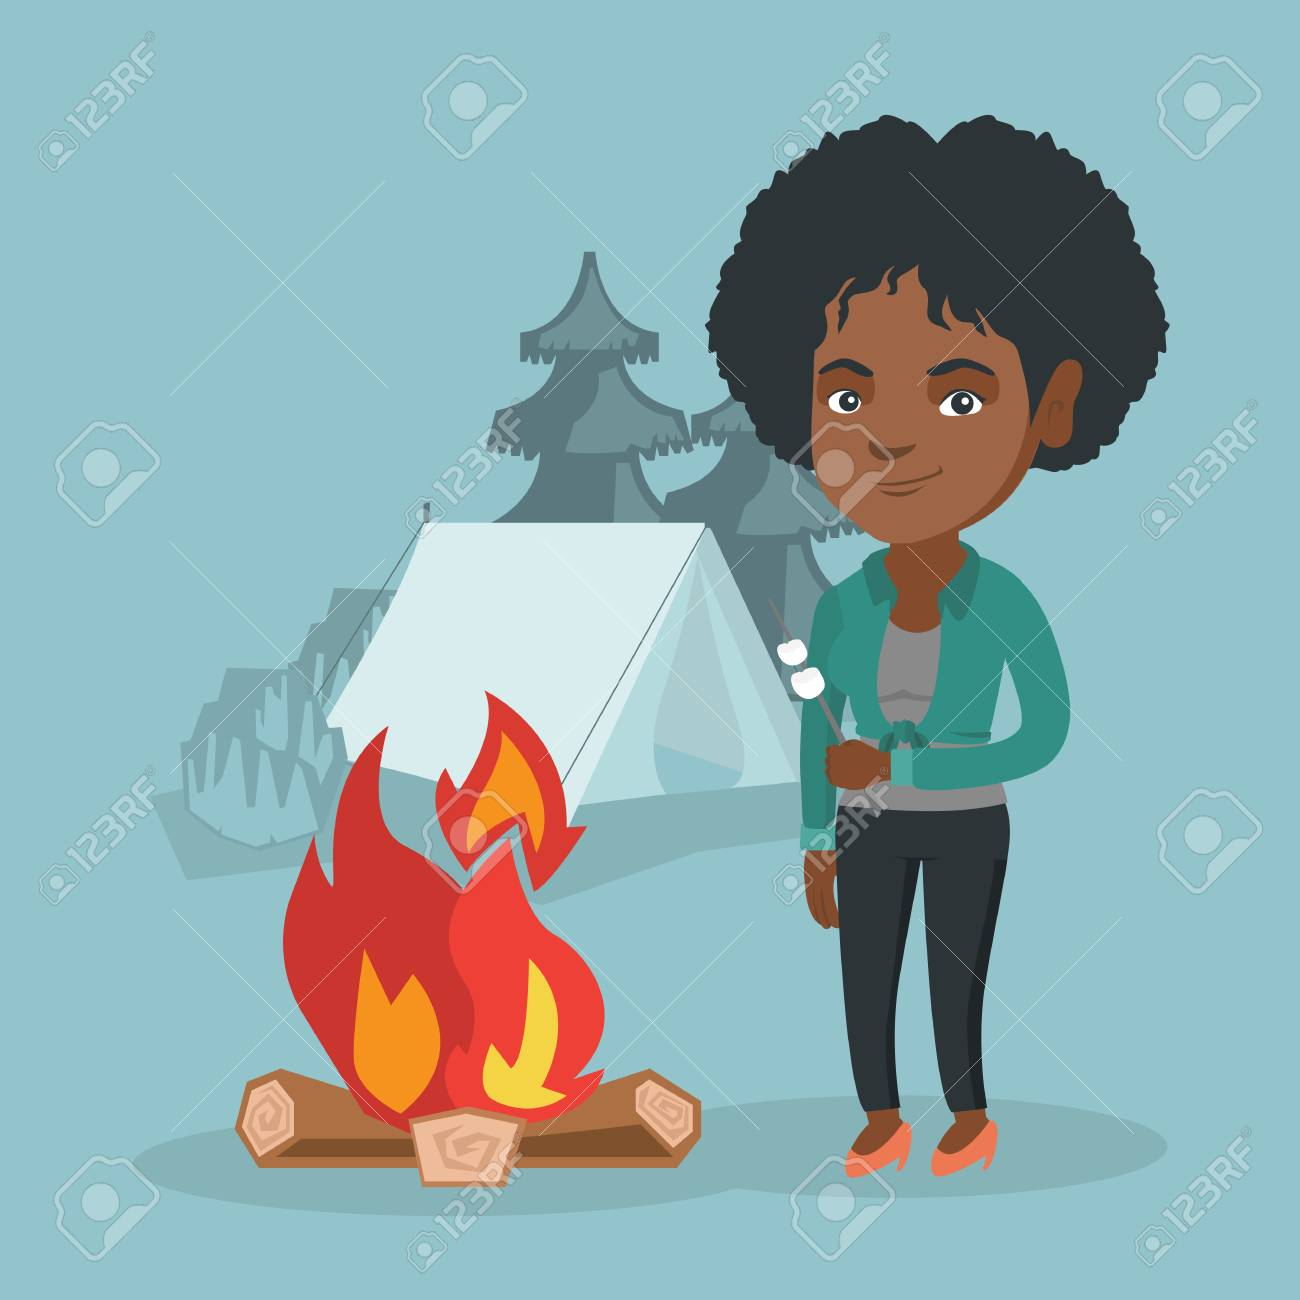 African Woman Roasting Marshmallows Over Campfire On The Background Of Camping Site With A Tent